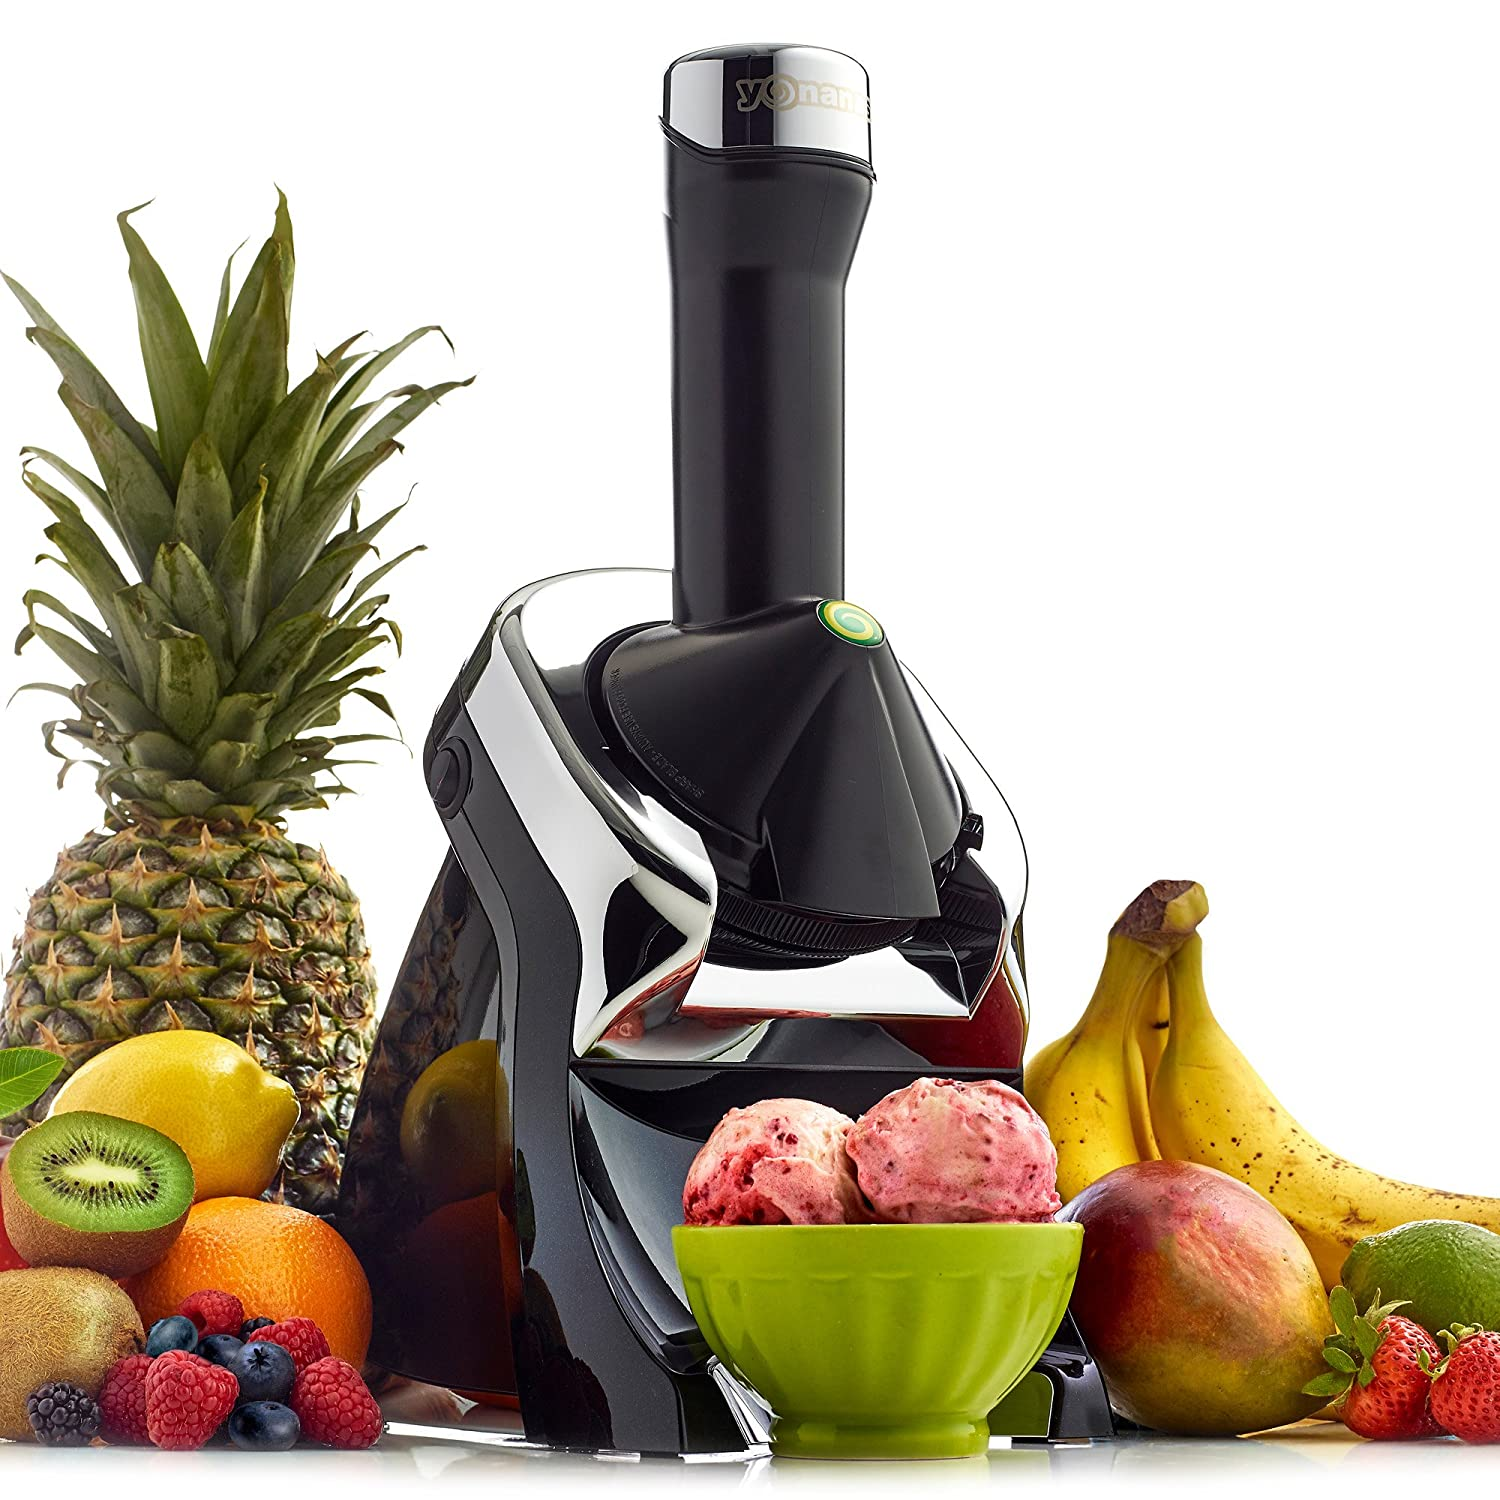 【並行輸入】Yonanas Elite Frozen Healthy Dessert Maker - 100% Fruit Soft-Serve Maker (Black) ヨナナス デザートメーカー   B00DGQVTNW